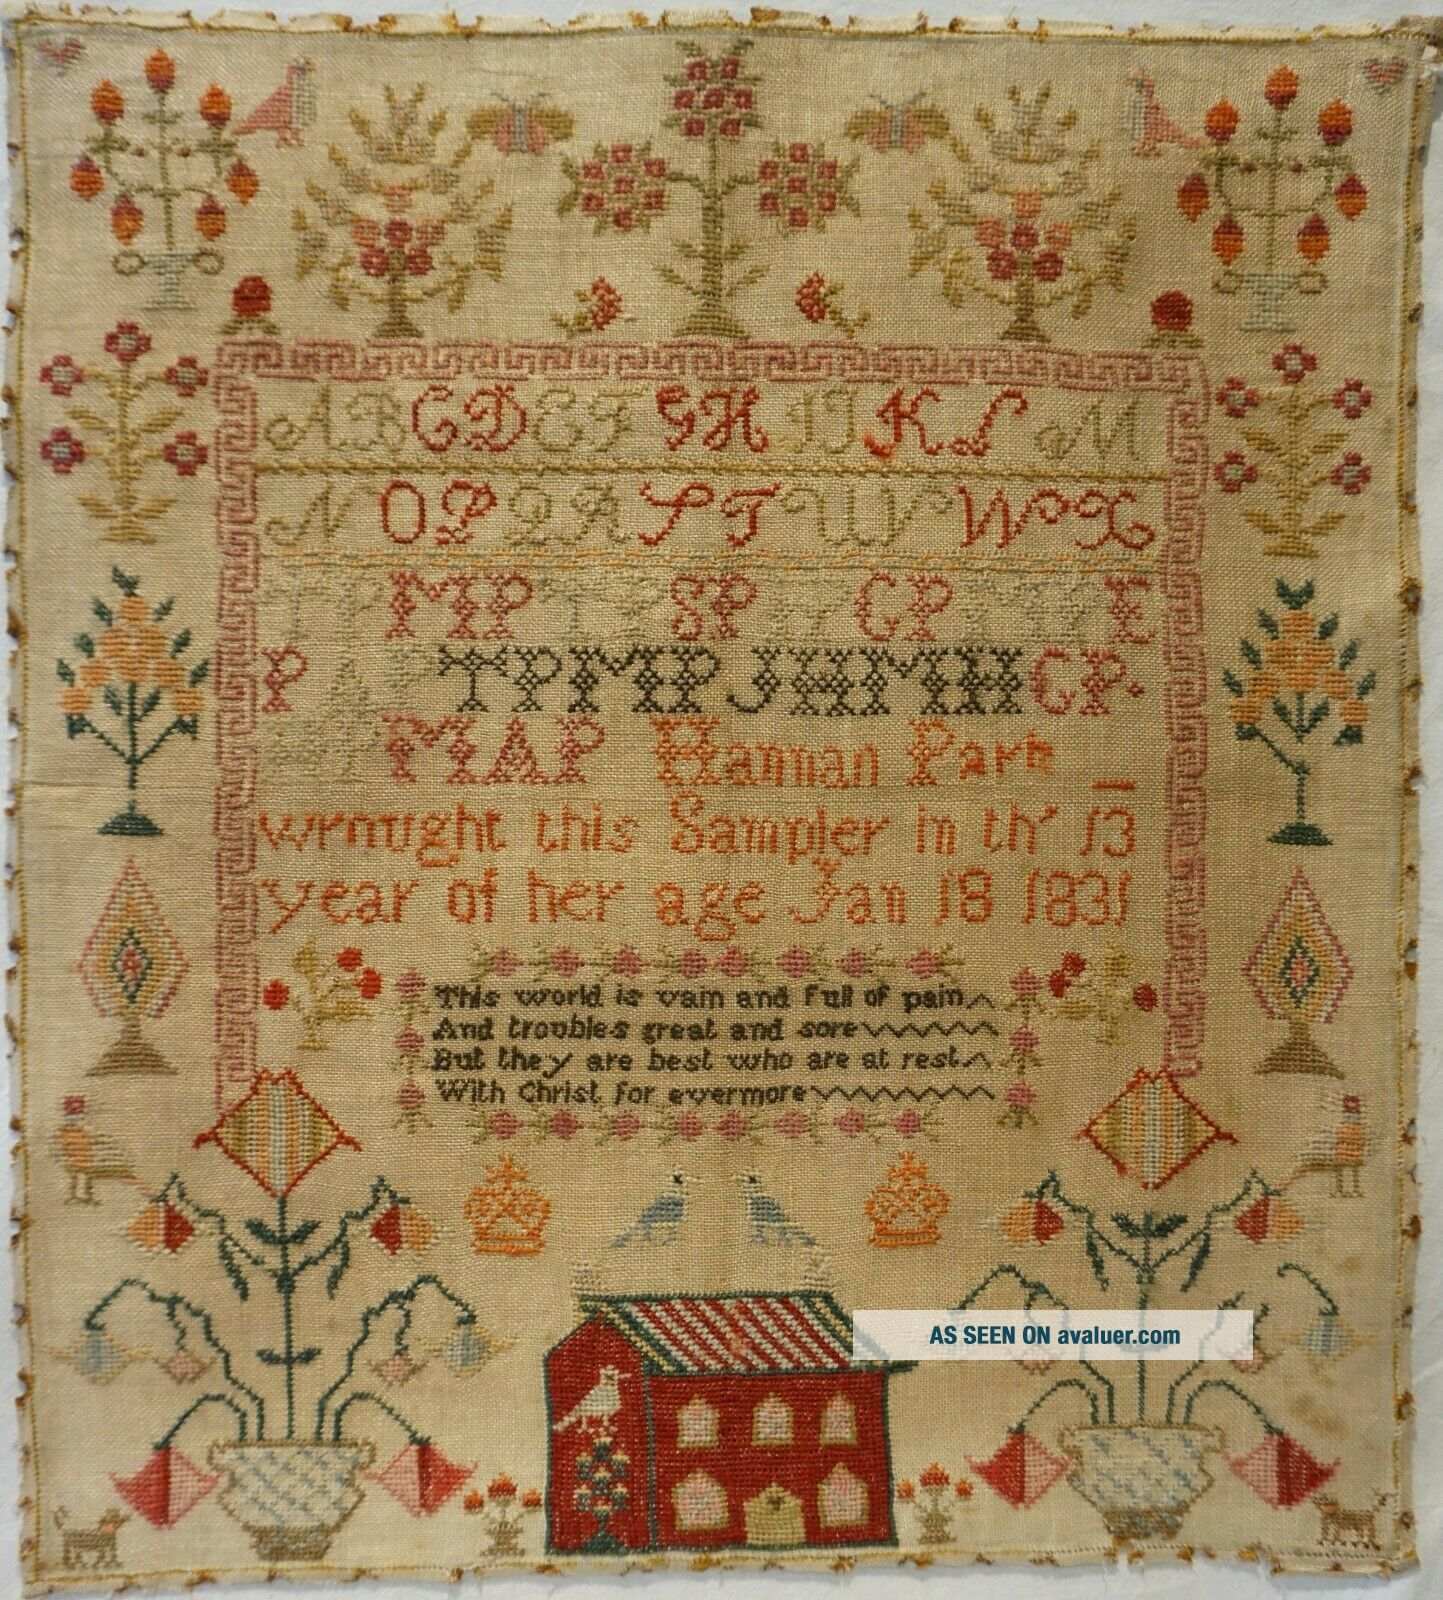 EARLY 19TH CENTURY RED HOUSE,  MOTIF & VERSE SAMPLER BY HANNAH PARK AGE 11 - 1831